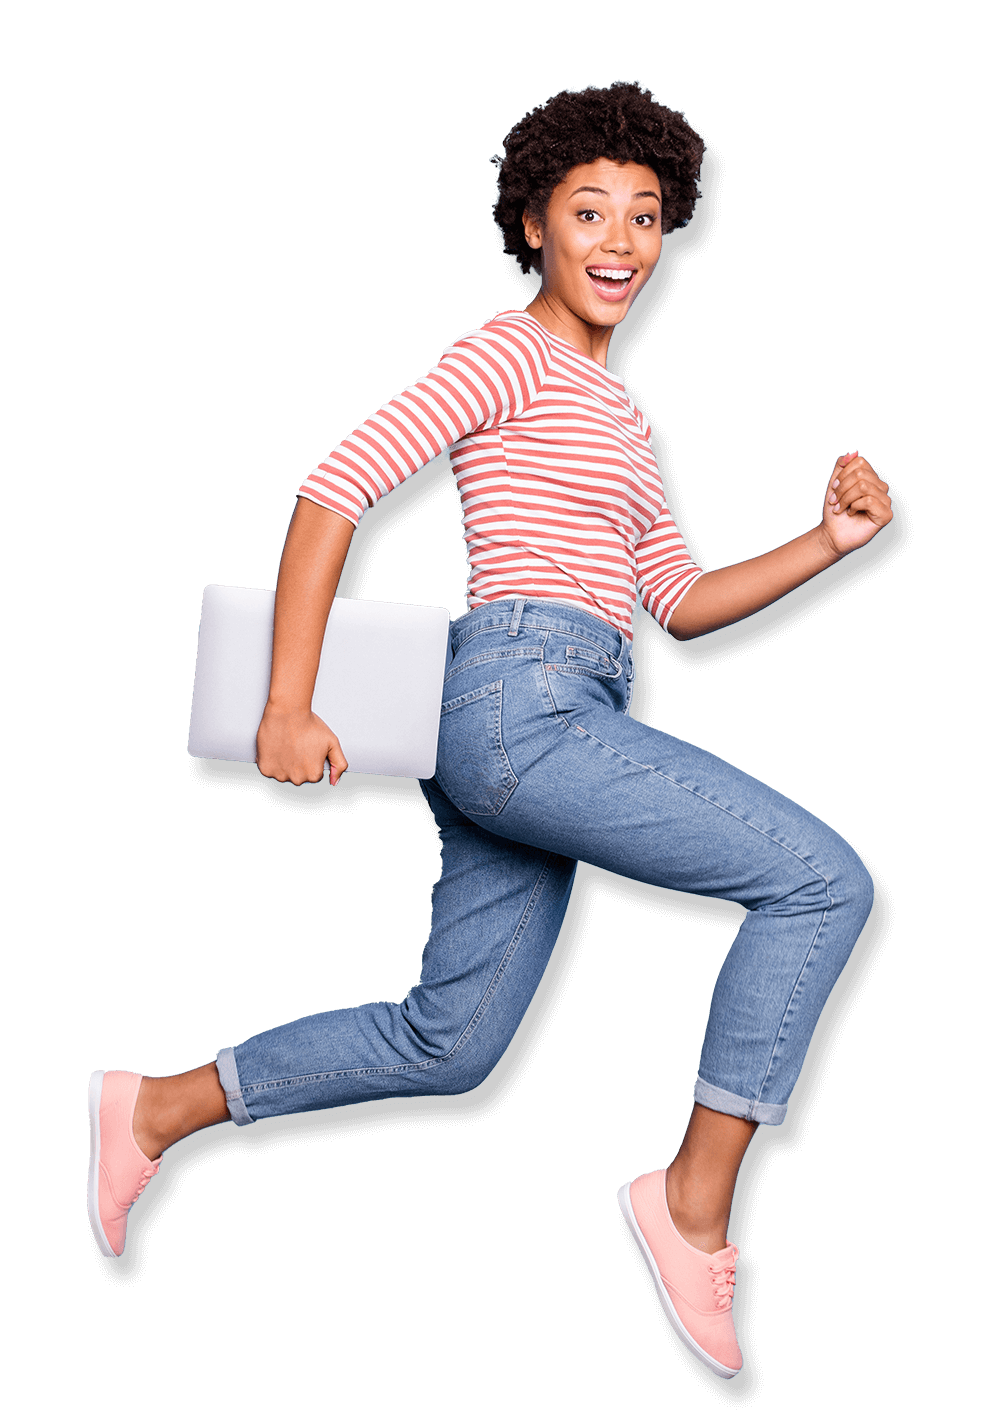 Girl Jumping with Laptop